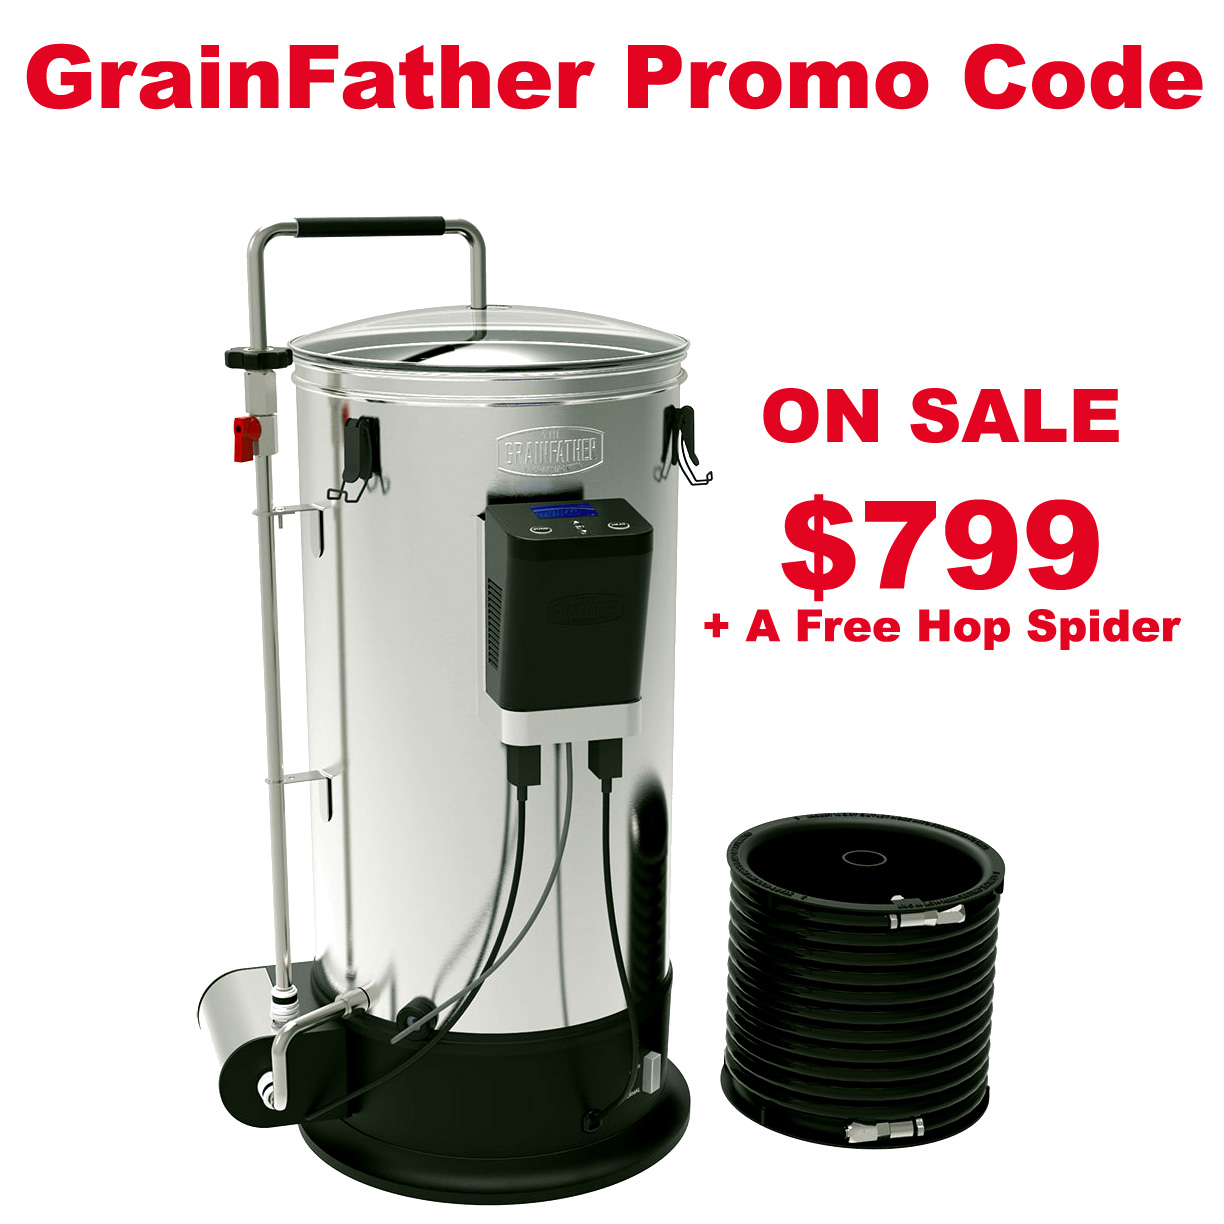 Coupon Code For Get a New GrainFather Connect for Just $799 + A Free Hop Spider Coupon Code